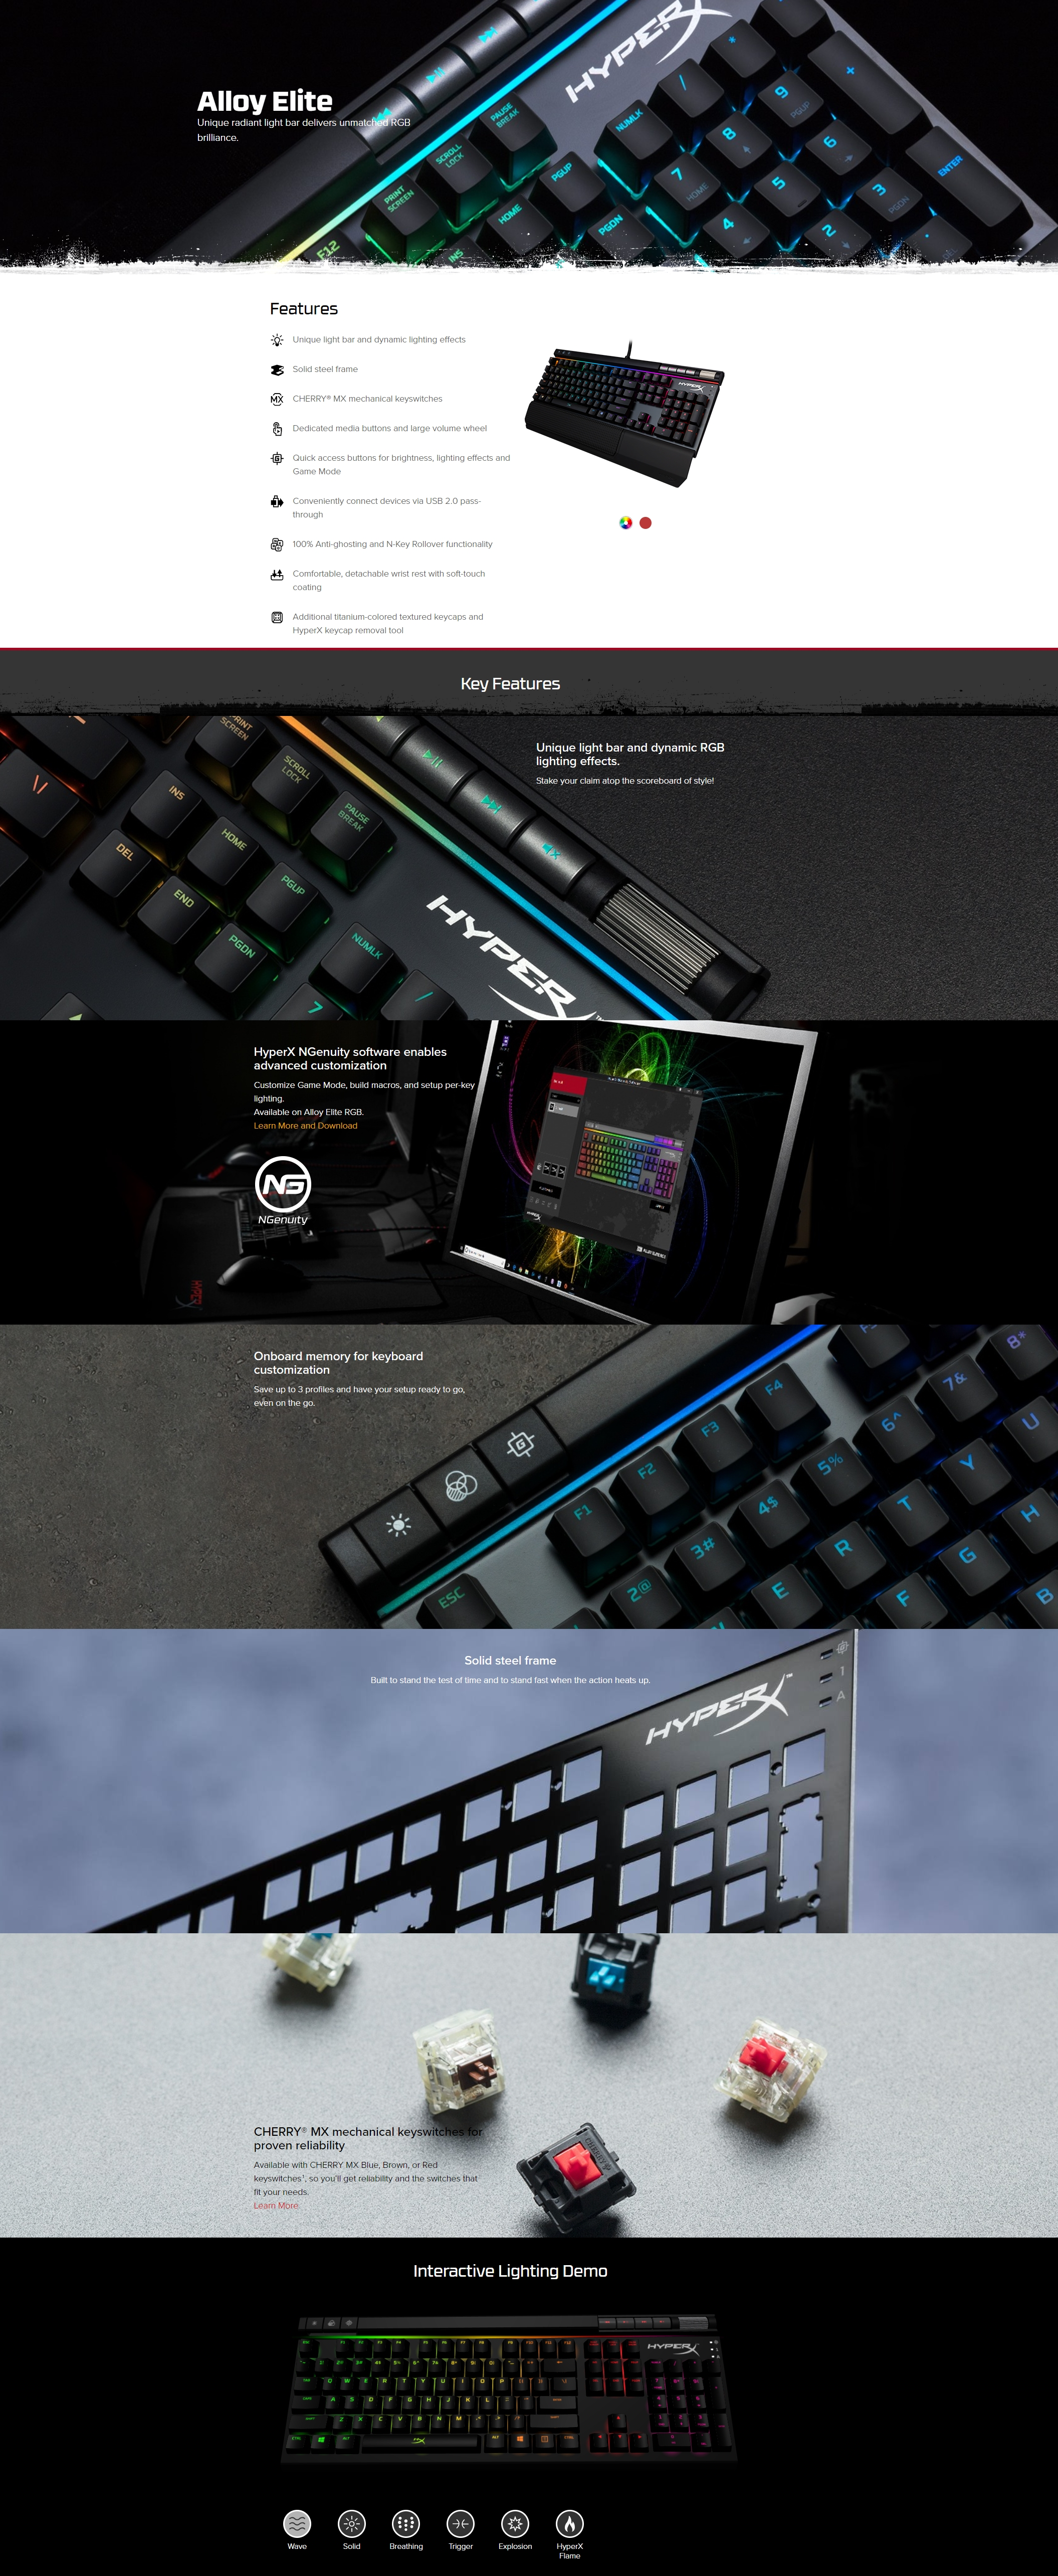 A large marketing image providing additional information about the product Kingston HyperX Alloy Elite RGB Mechanical Gaming Keyboard (MX Red) - Additional alt info not provided